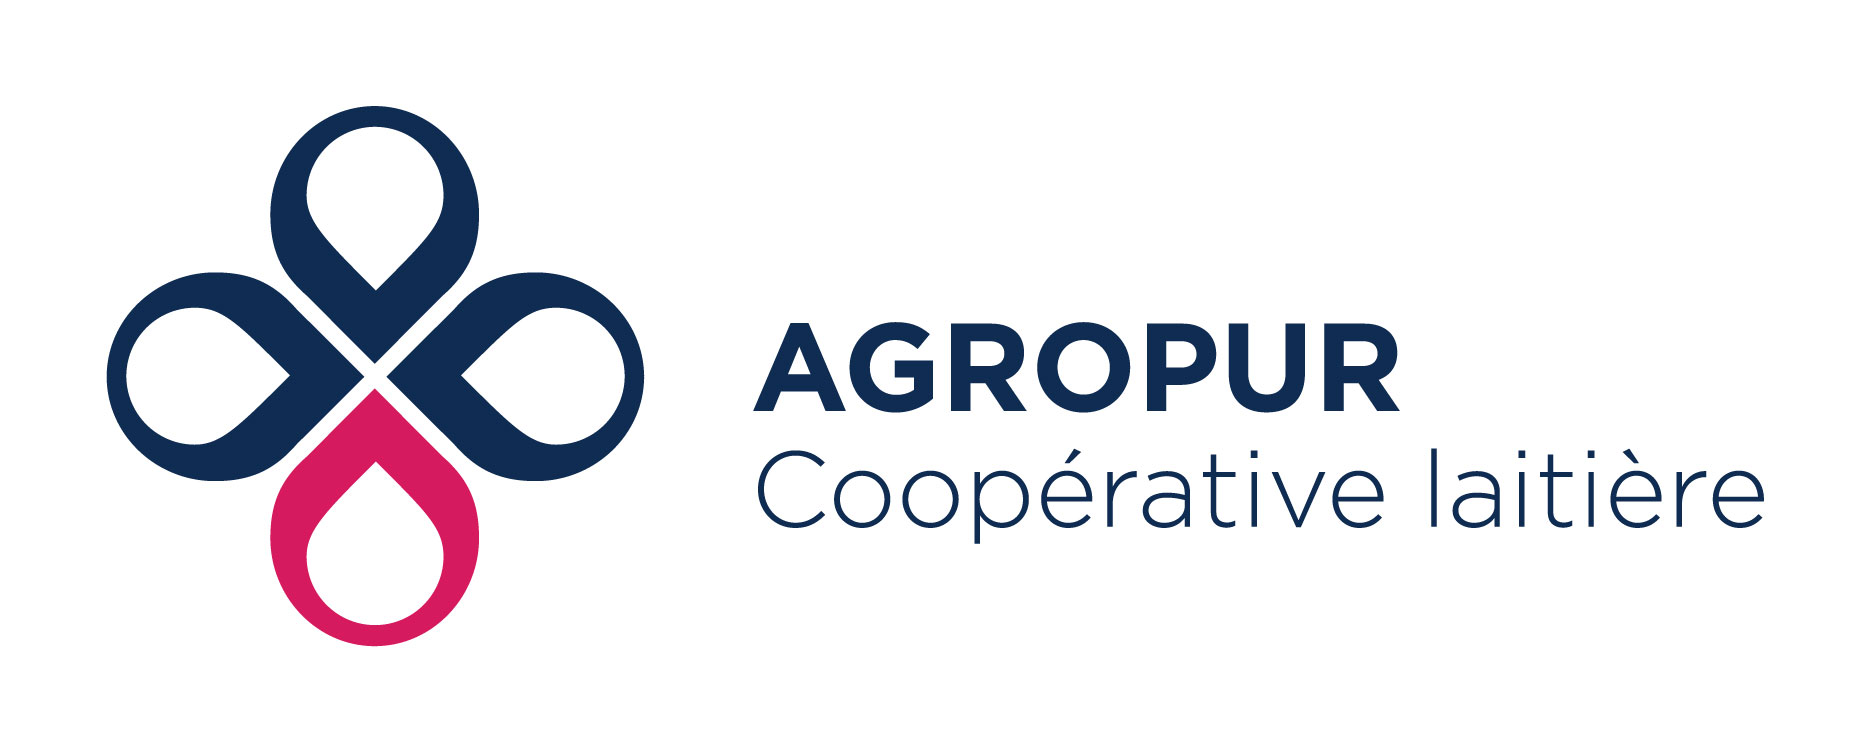 Agropur Courselle Cycles